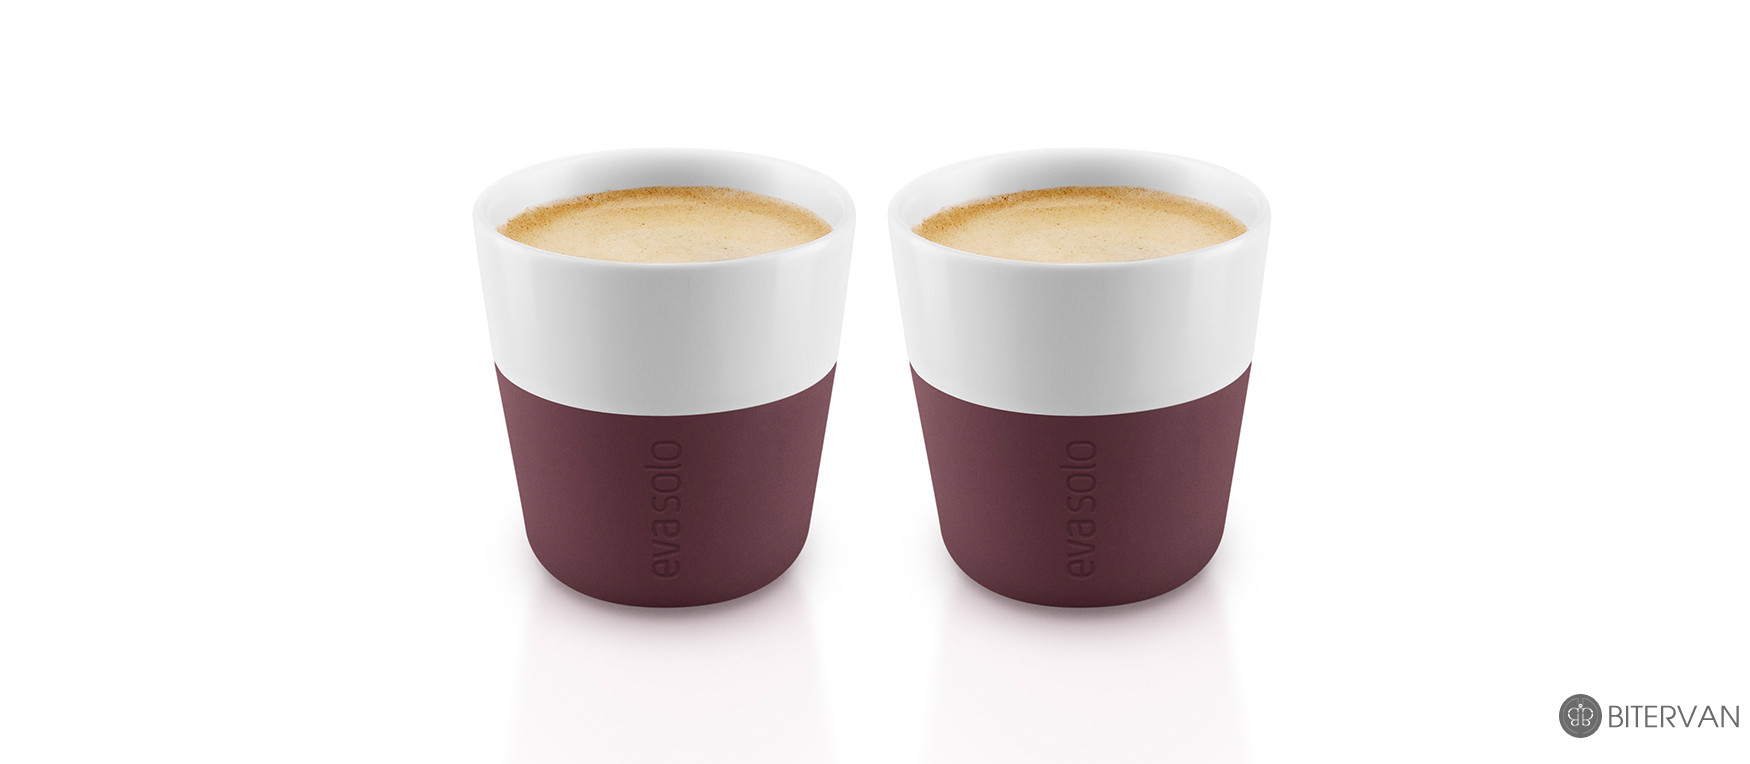 eva solo, espresso tumbler, 2 pcs, Dark Burgundy, 80 ml